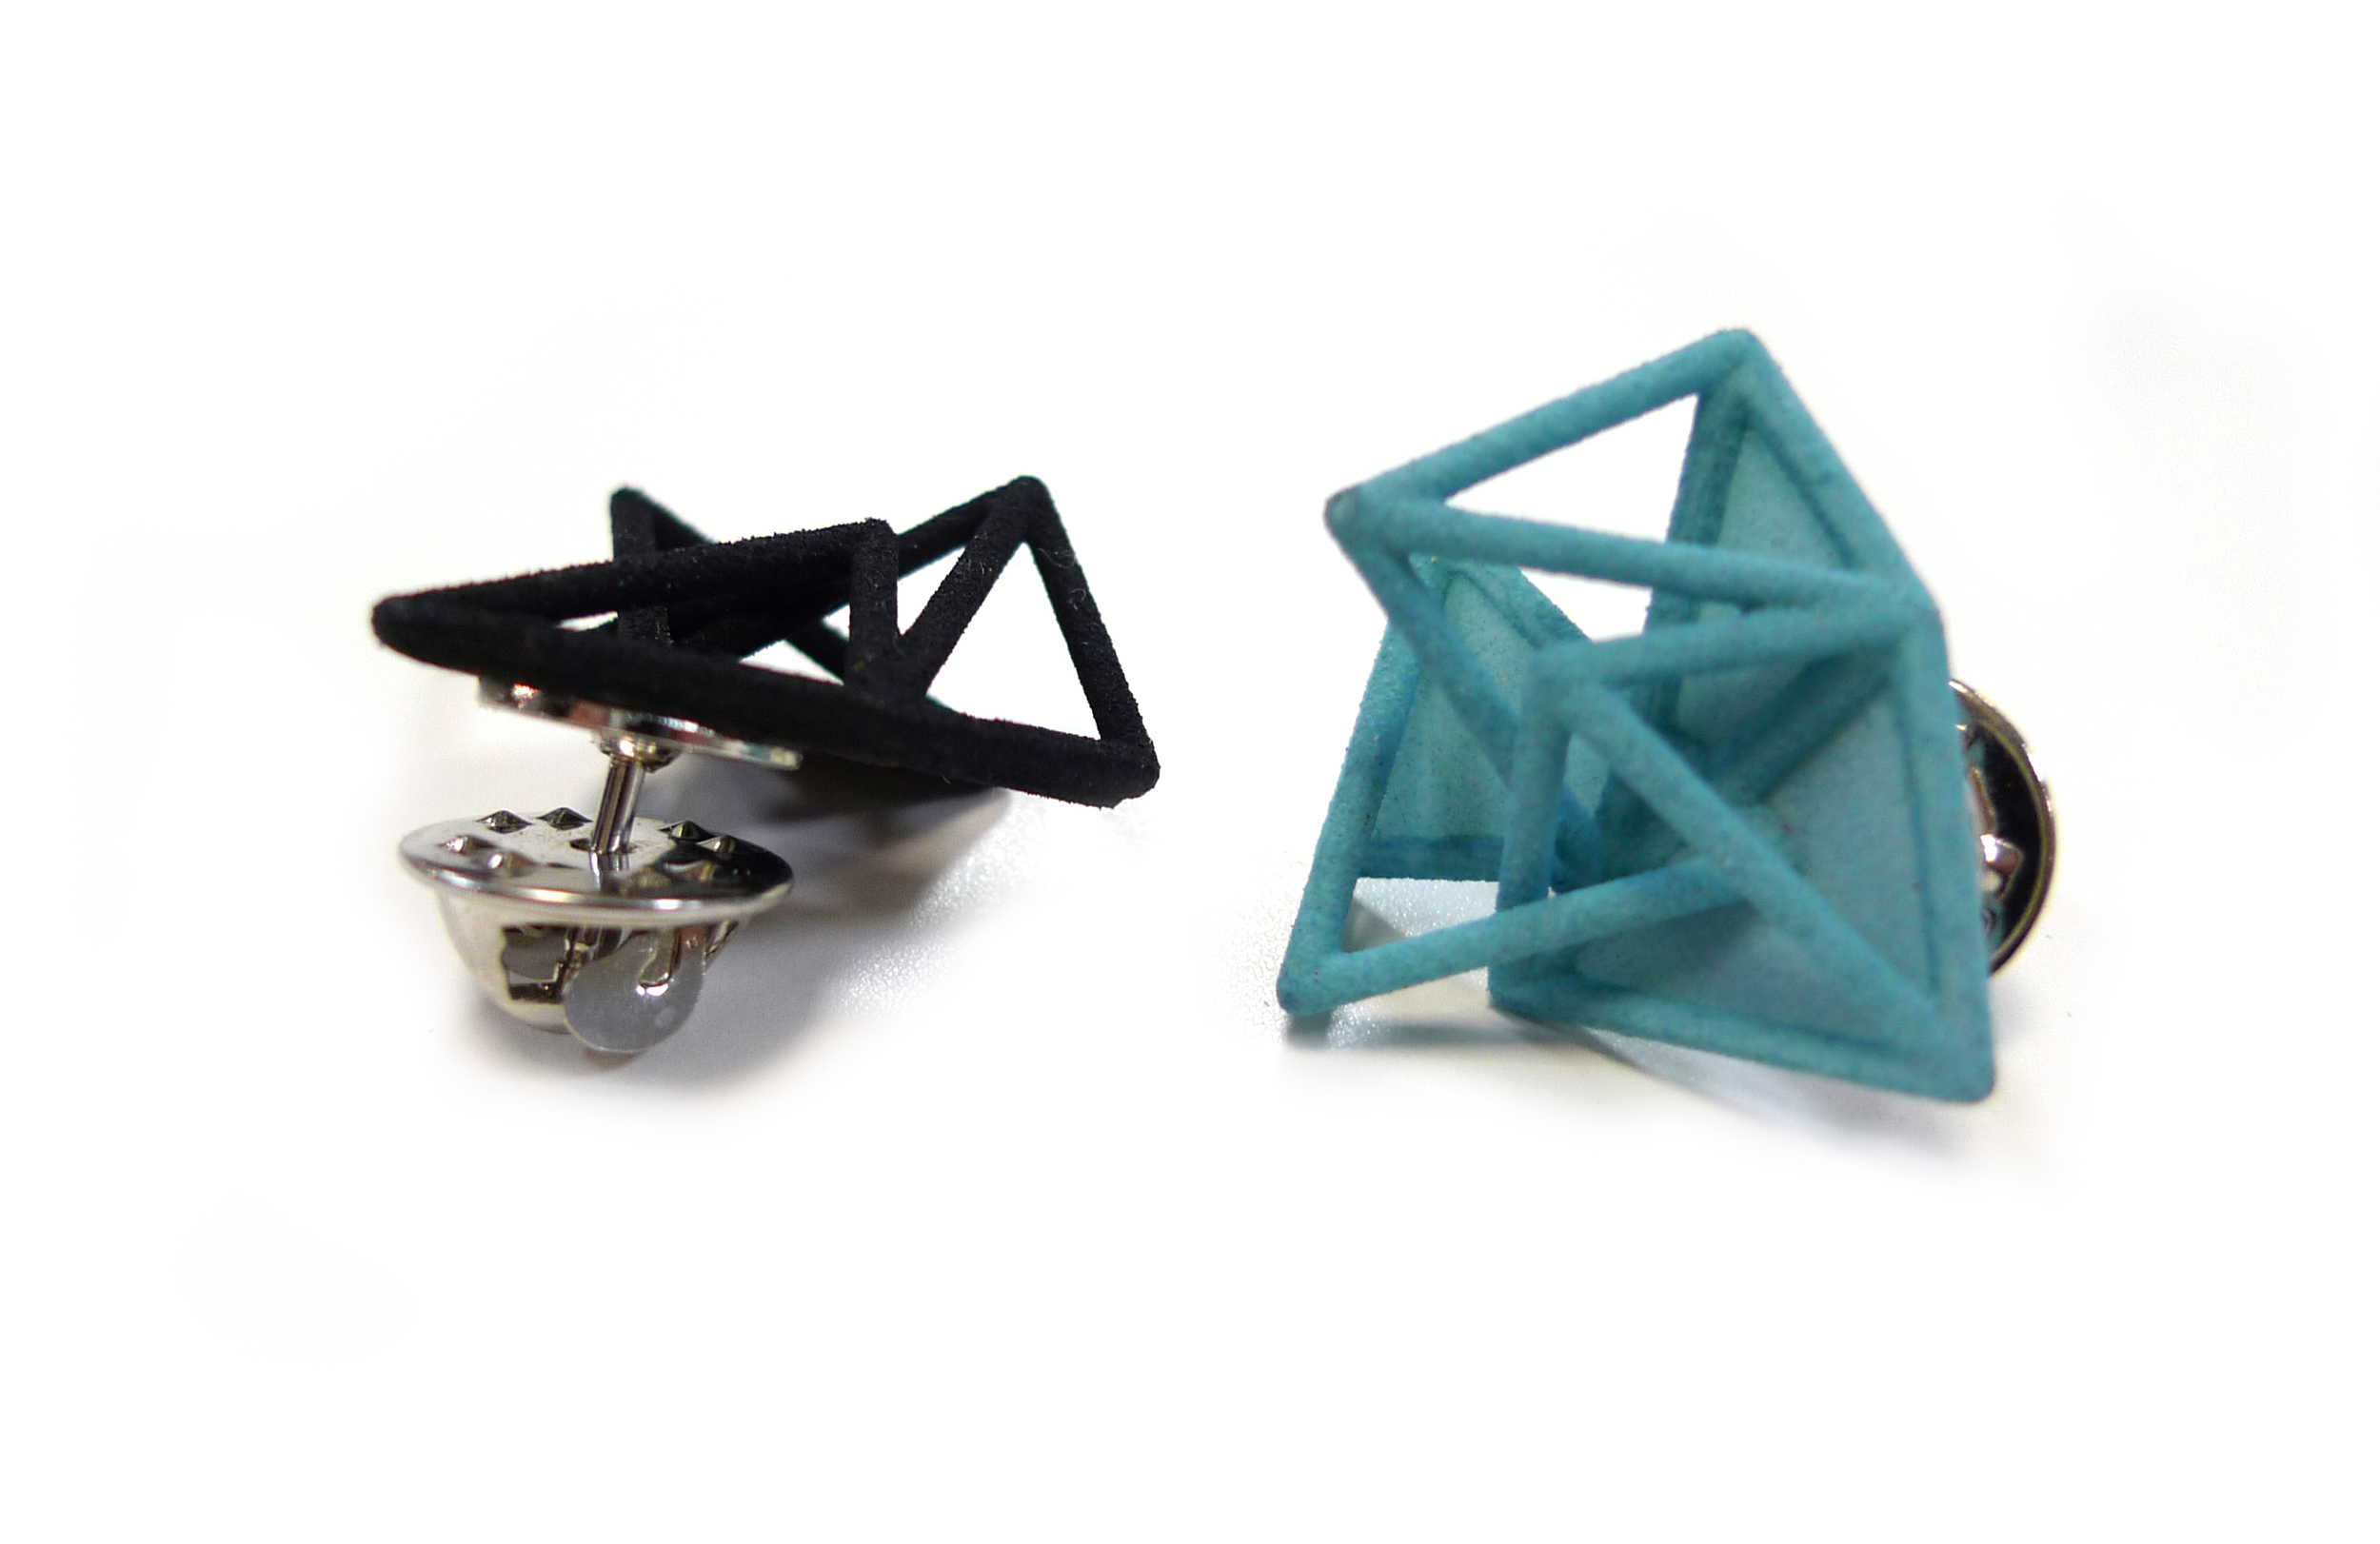 Tetryn Wireframe Cluster Pins   6960: In Nylon $5